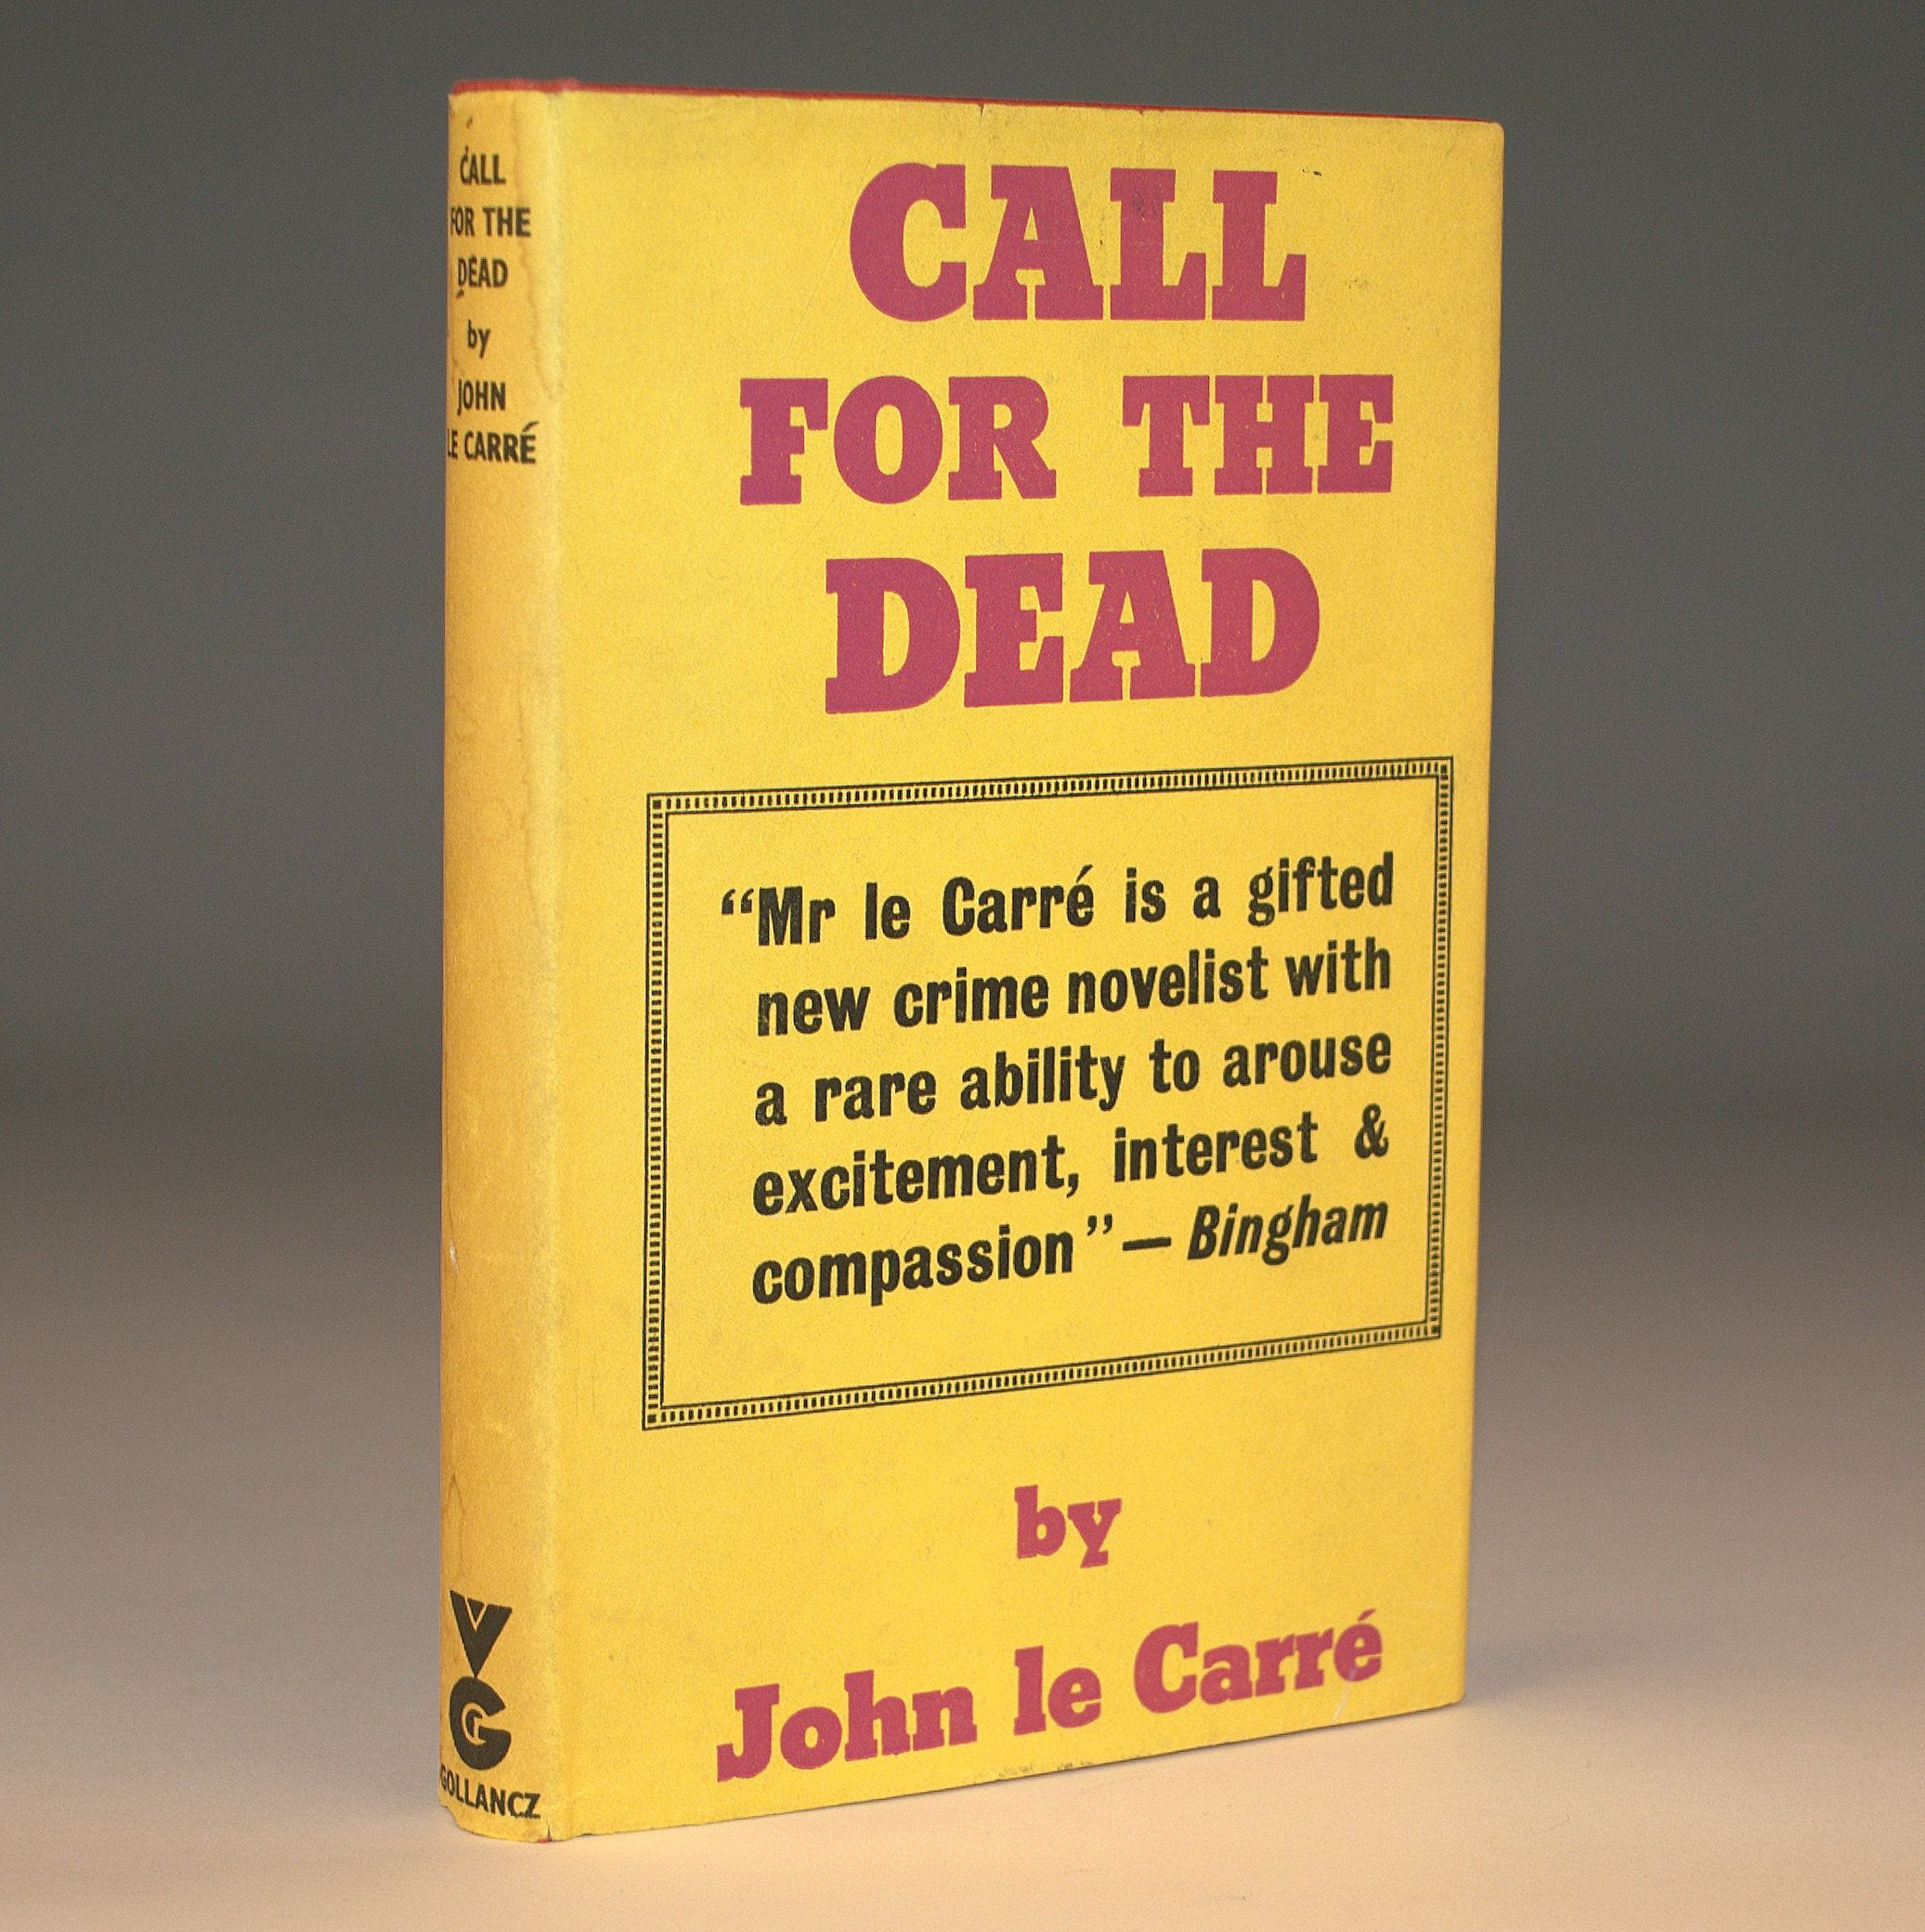 Call For The Dead by John le Carre first edition (With